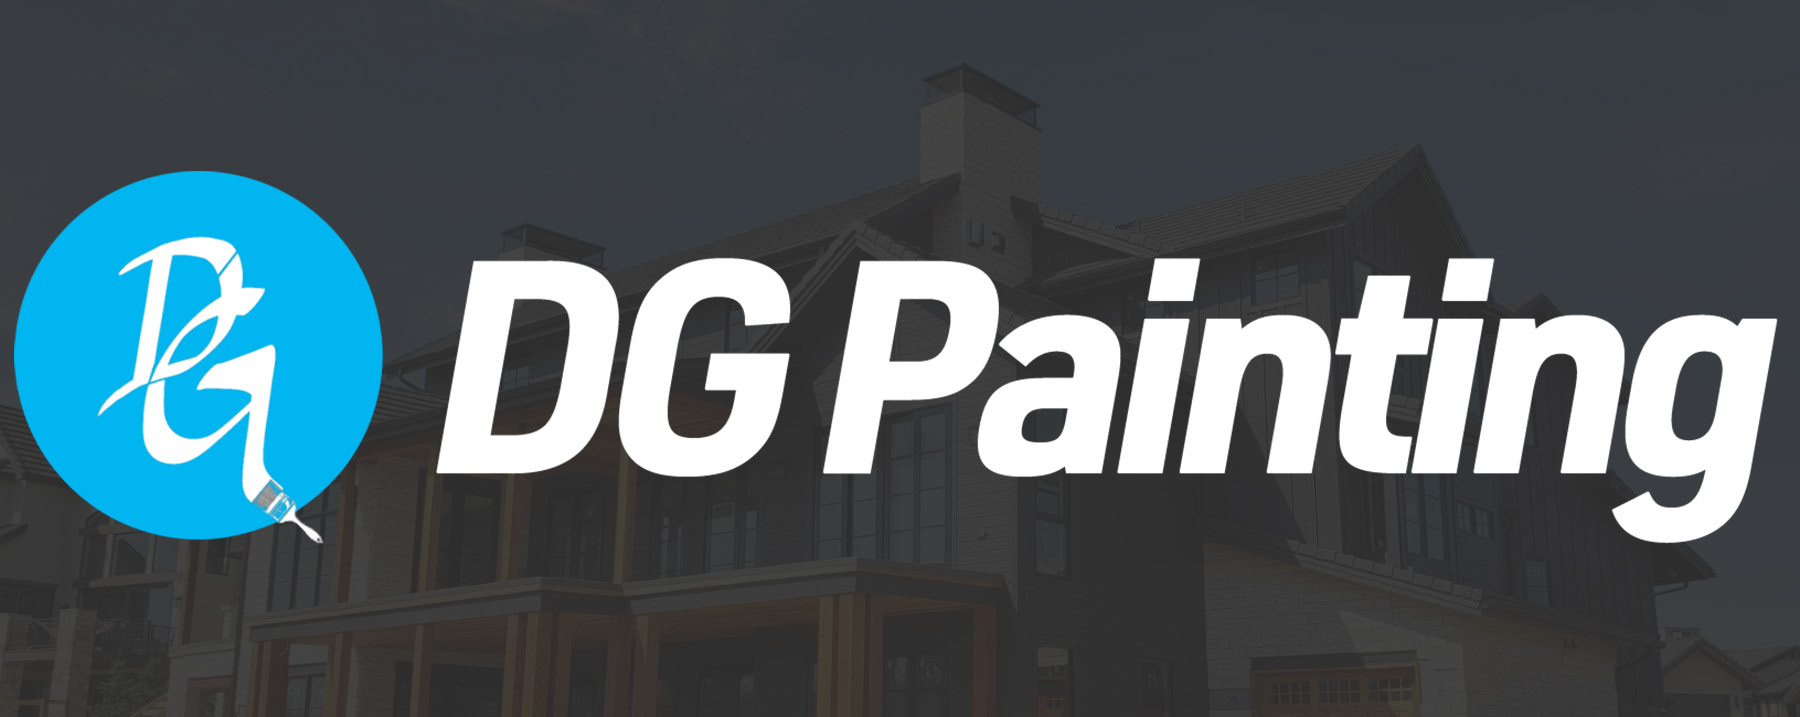 Get Inspired With Castle Rock's Own DG Painting For Interior And Exterior Painting Services